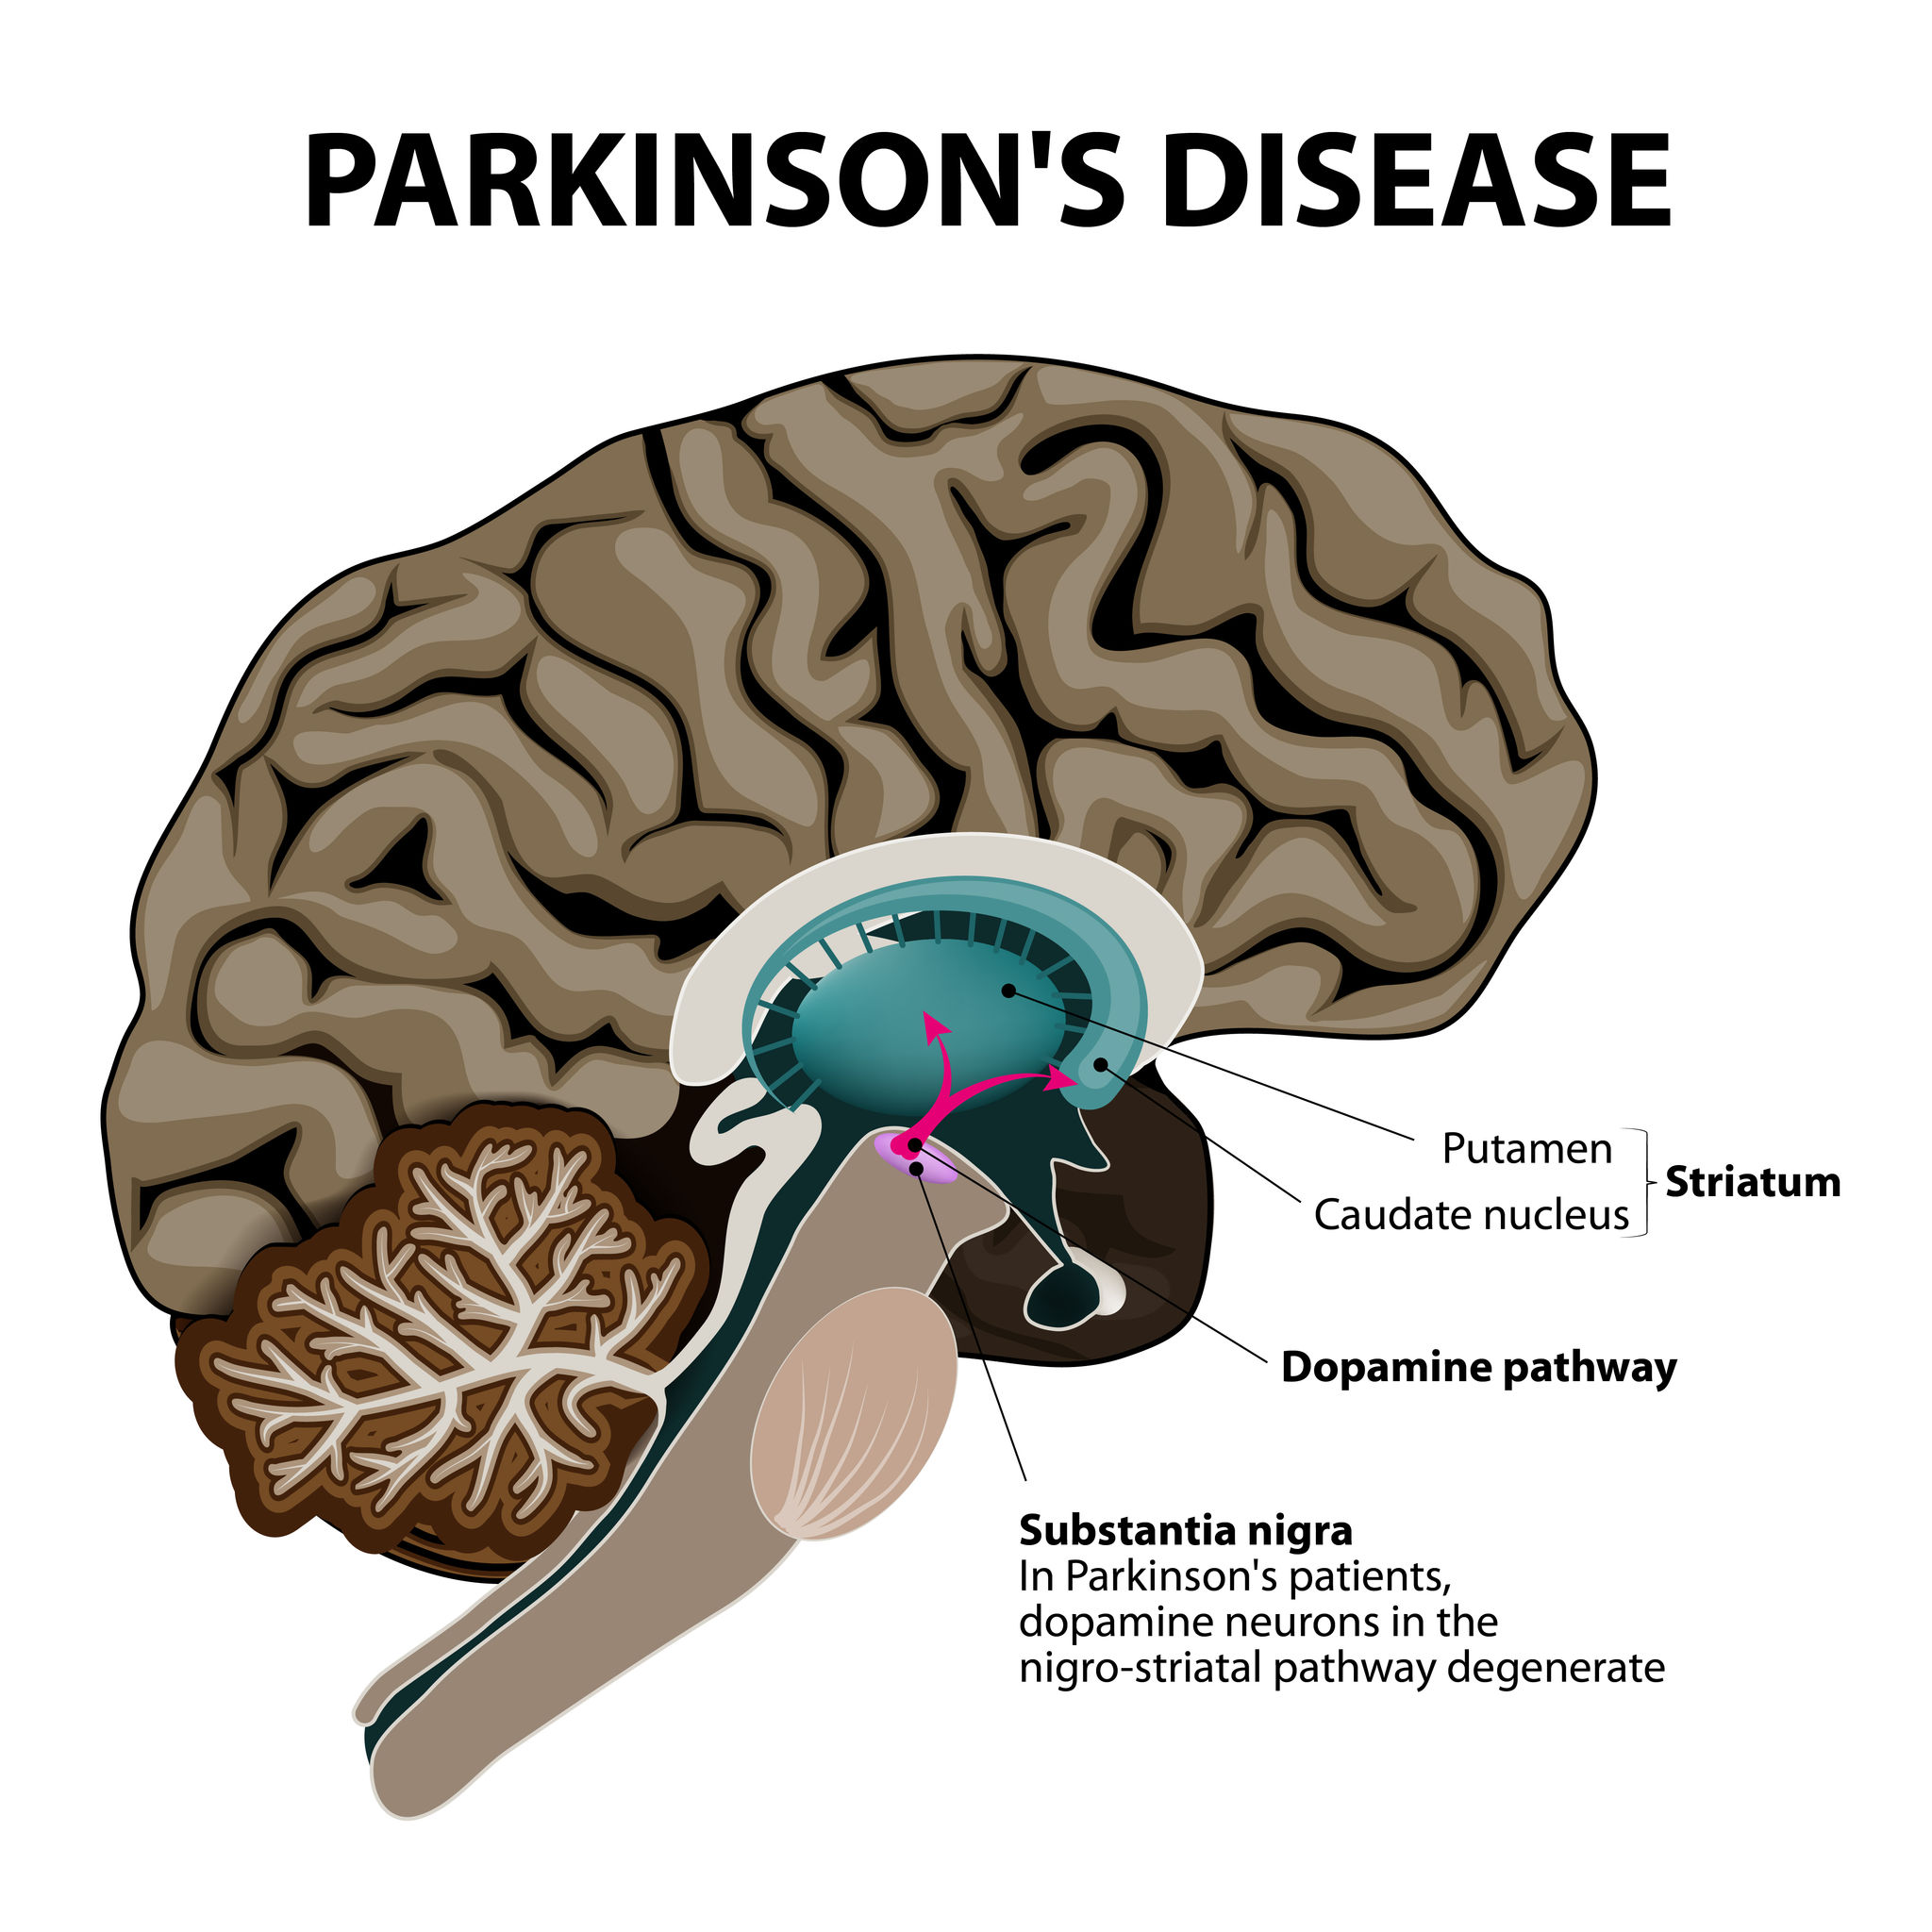 Image of a brain with parkinsons disease